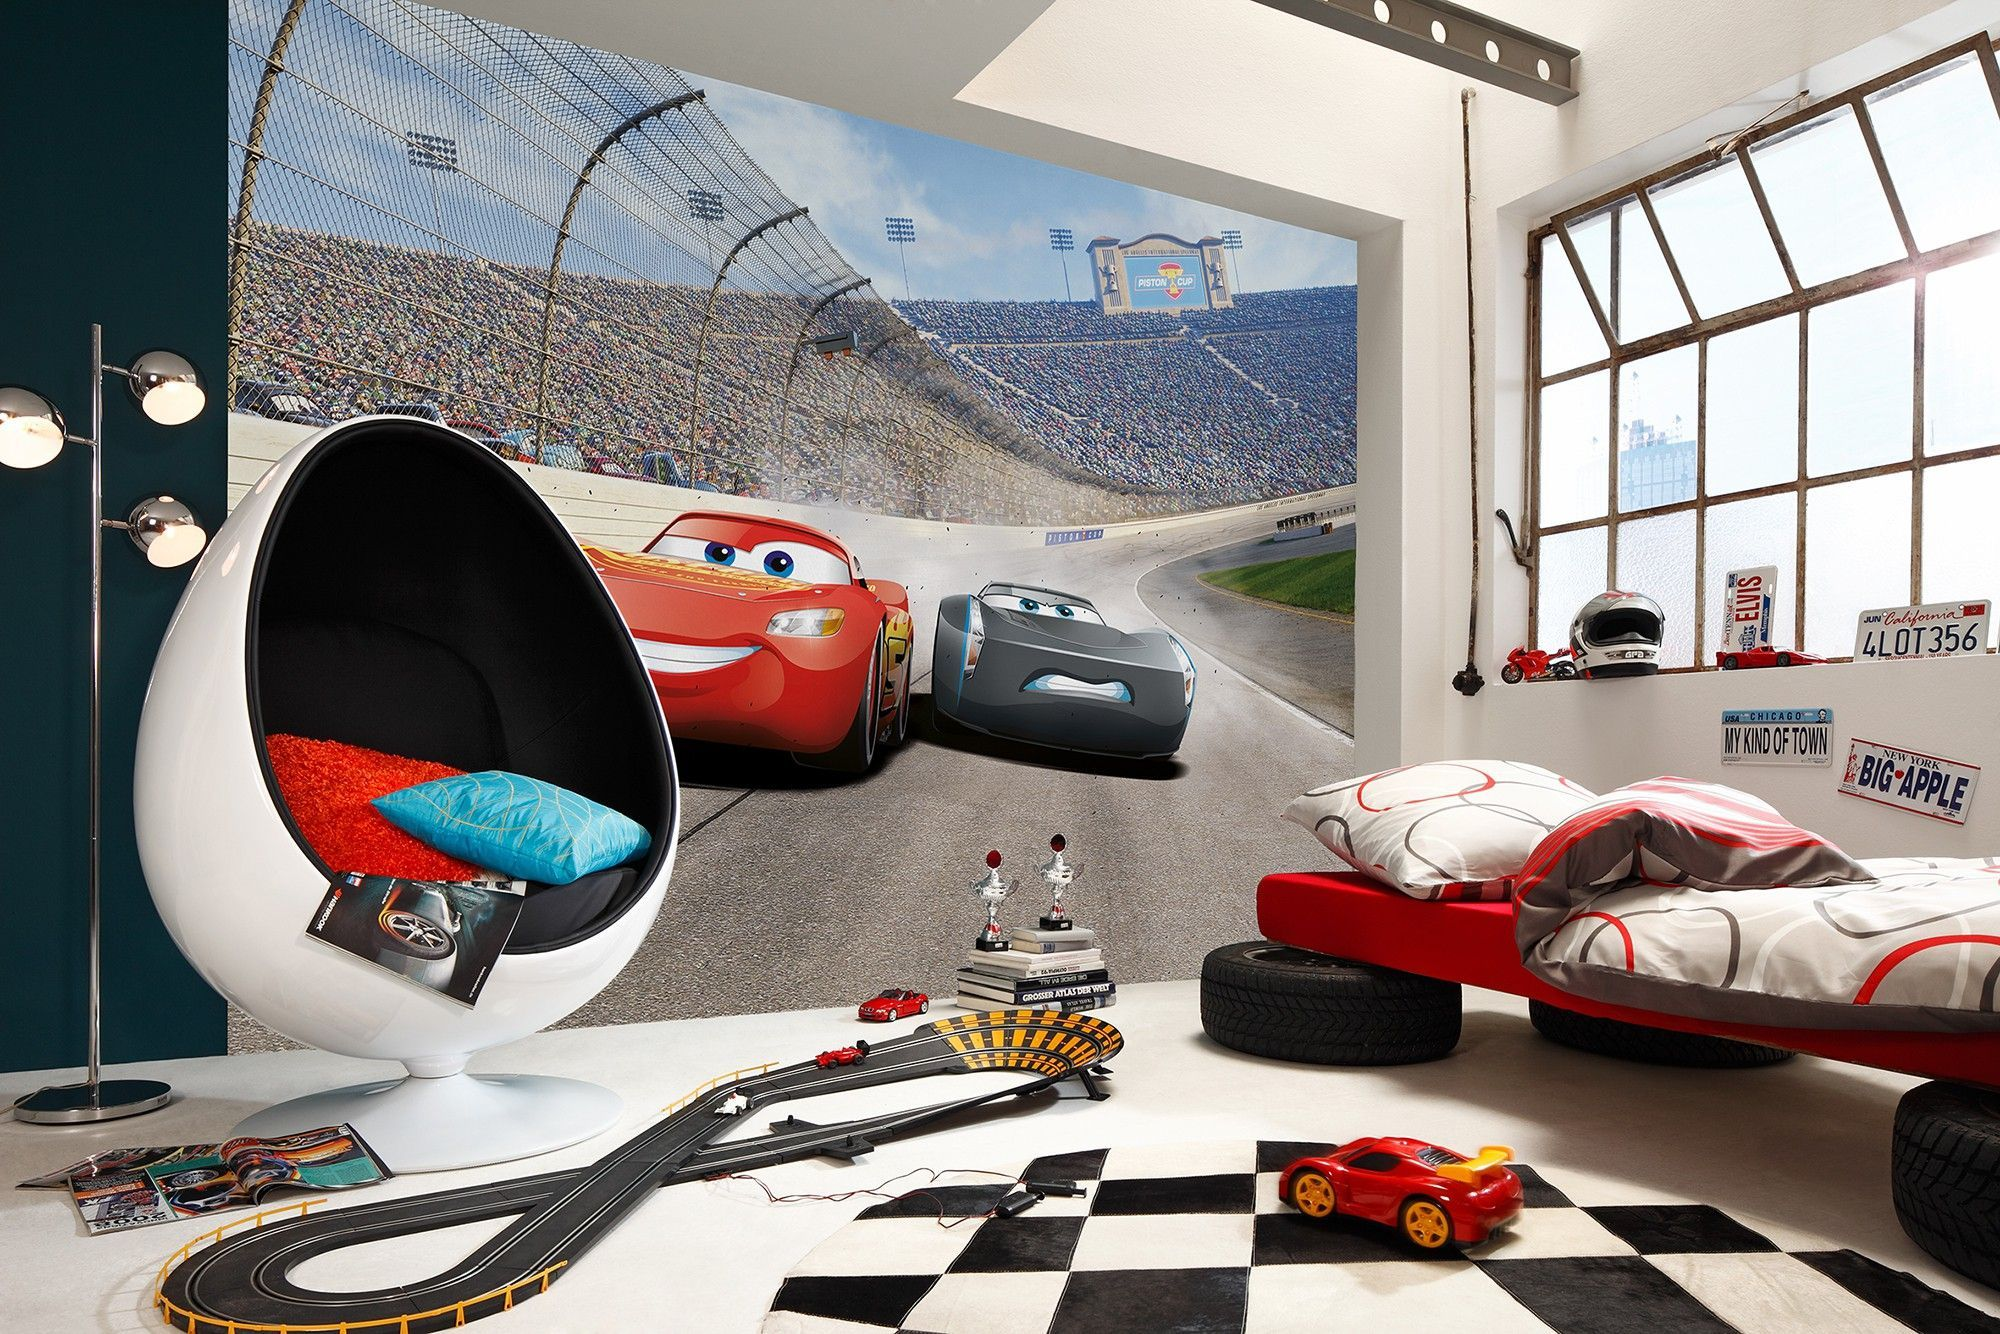 Cars 3 disney wall mural wallpaper buy it now boys room wall cars 3 disney wall mural wallpaper buy it now amipublicfo Image collections